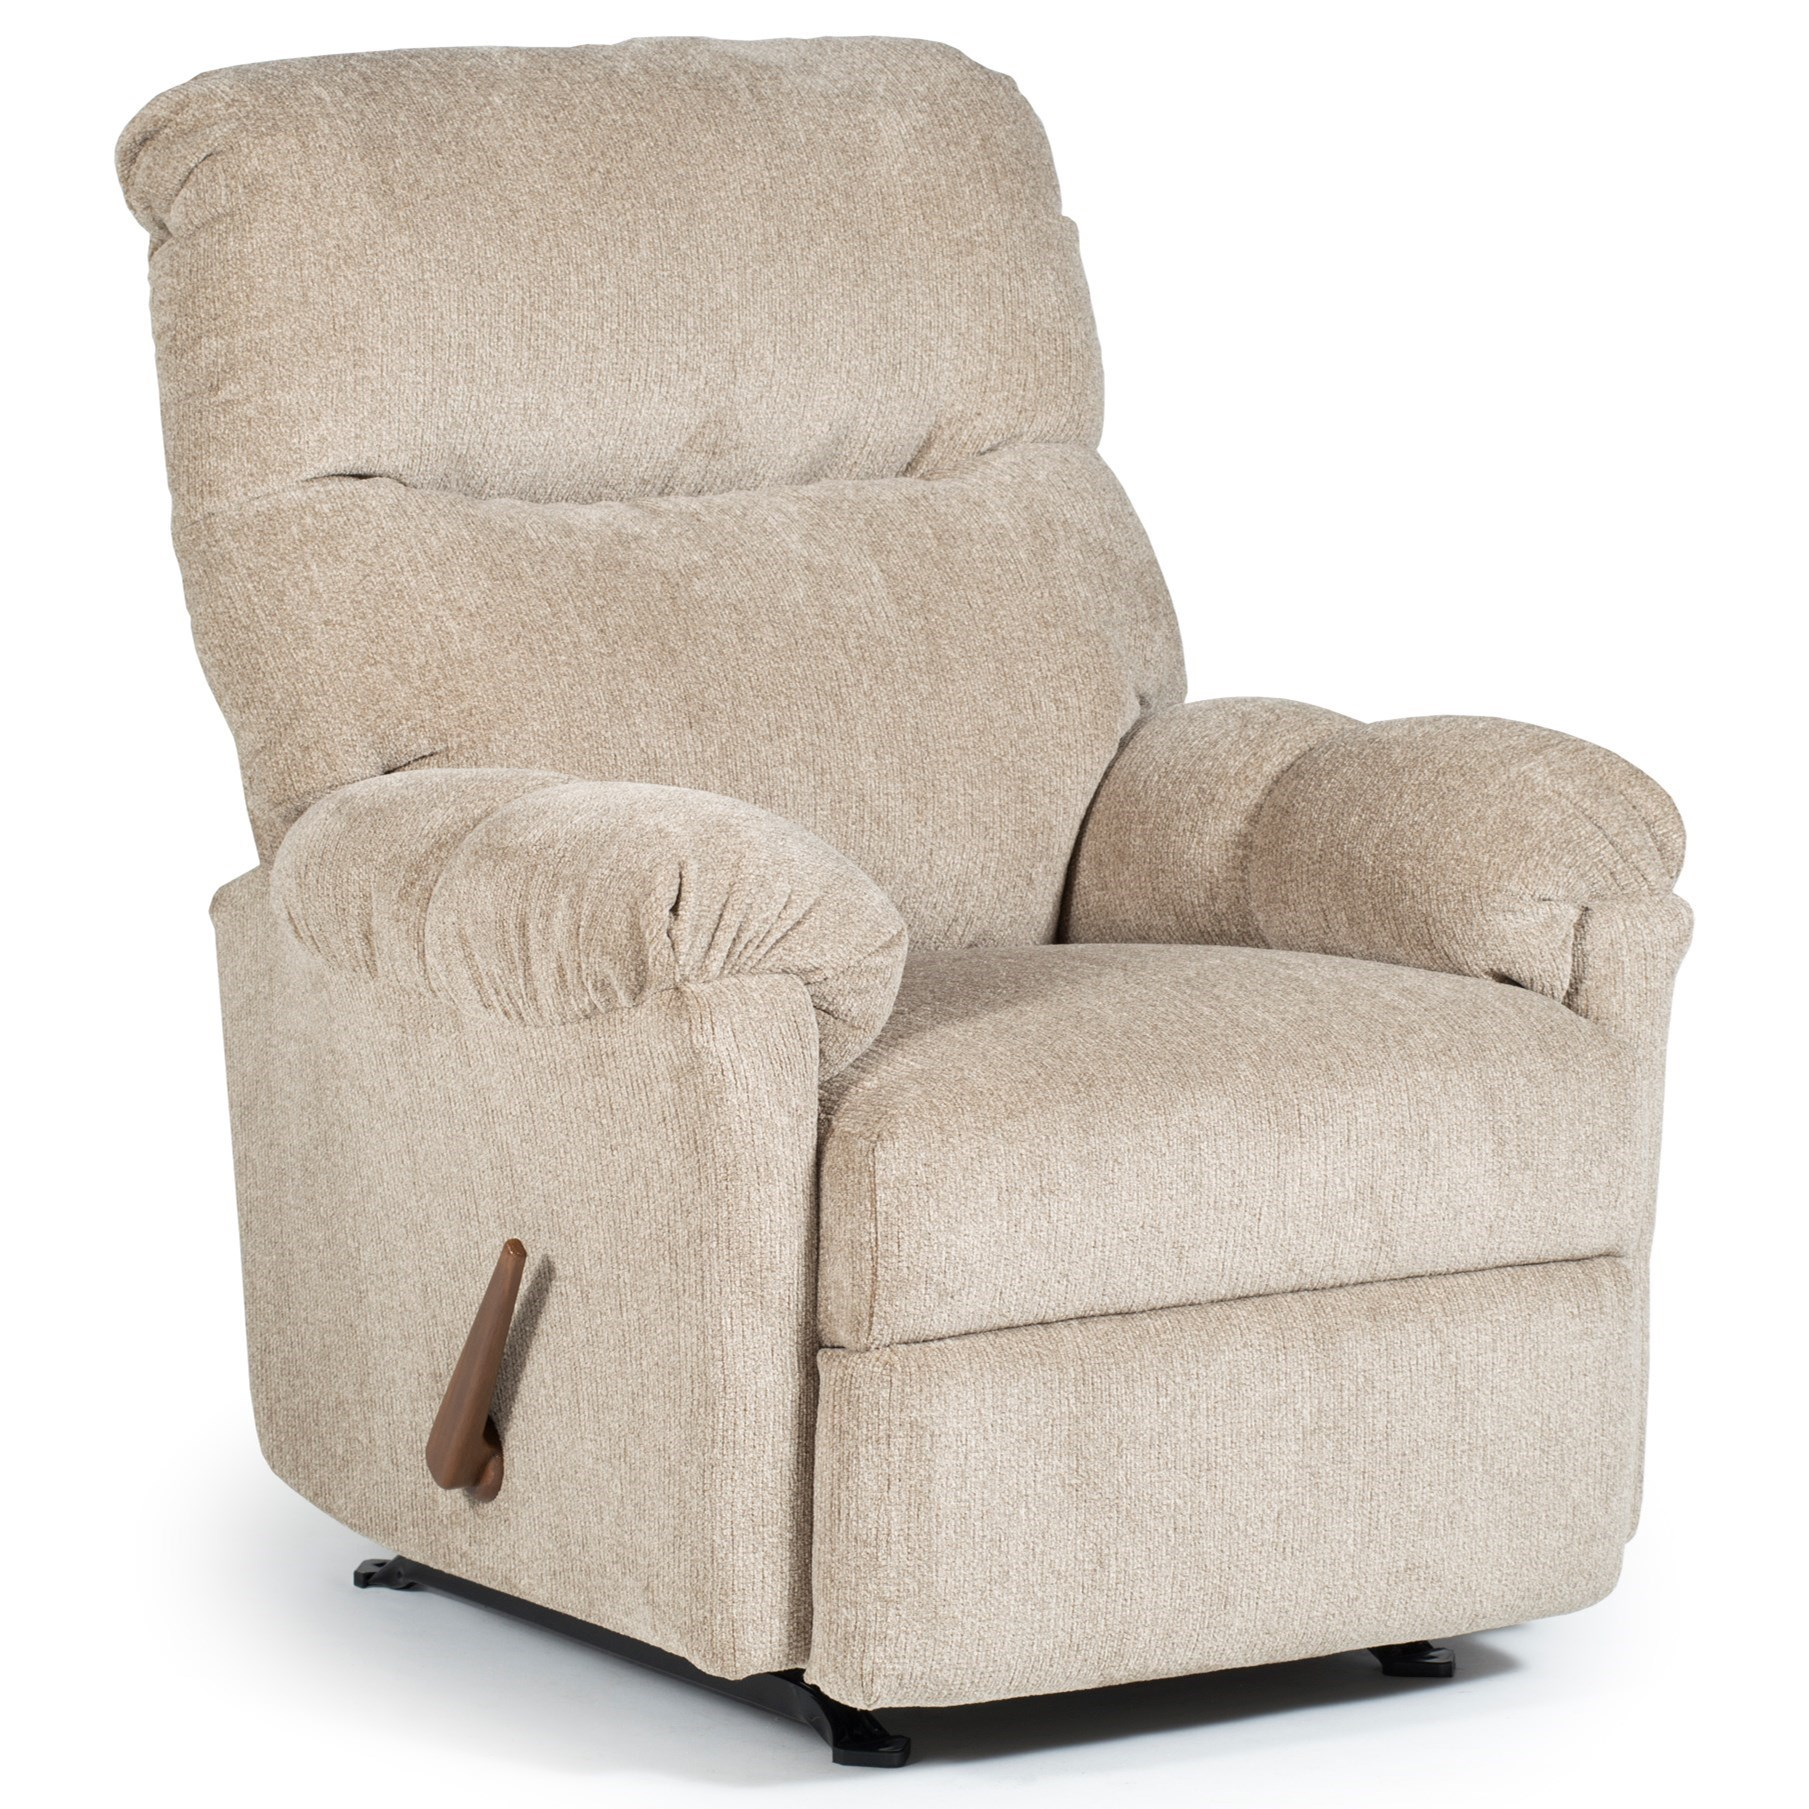 Best Home Furnishings Recliners - Medium Balmore Swivel Rocker Recliner - Item Number: 2NW69